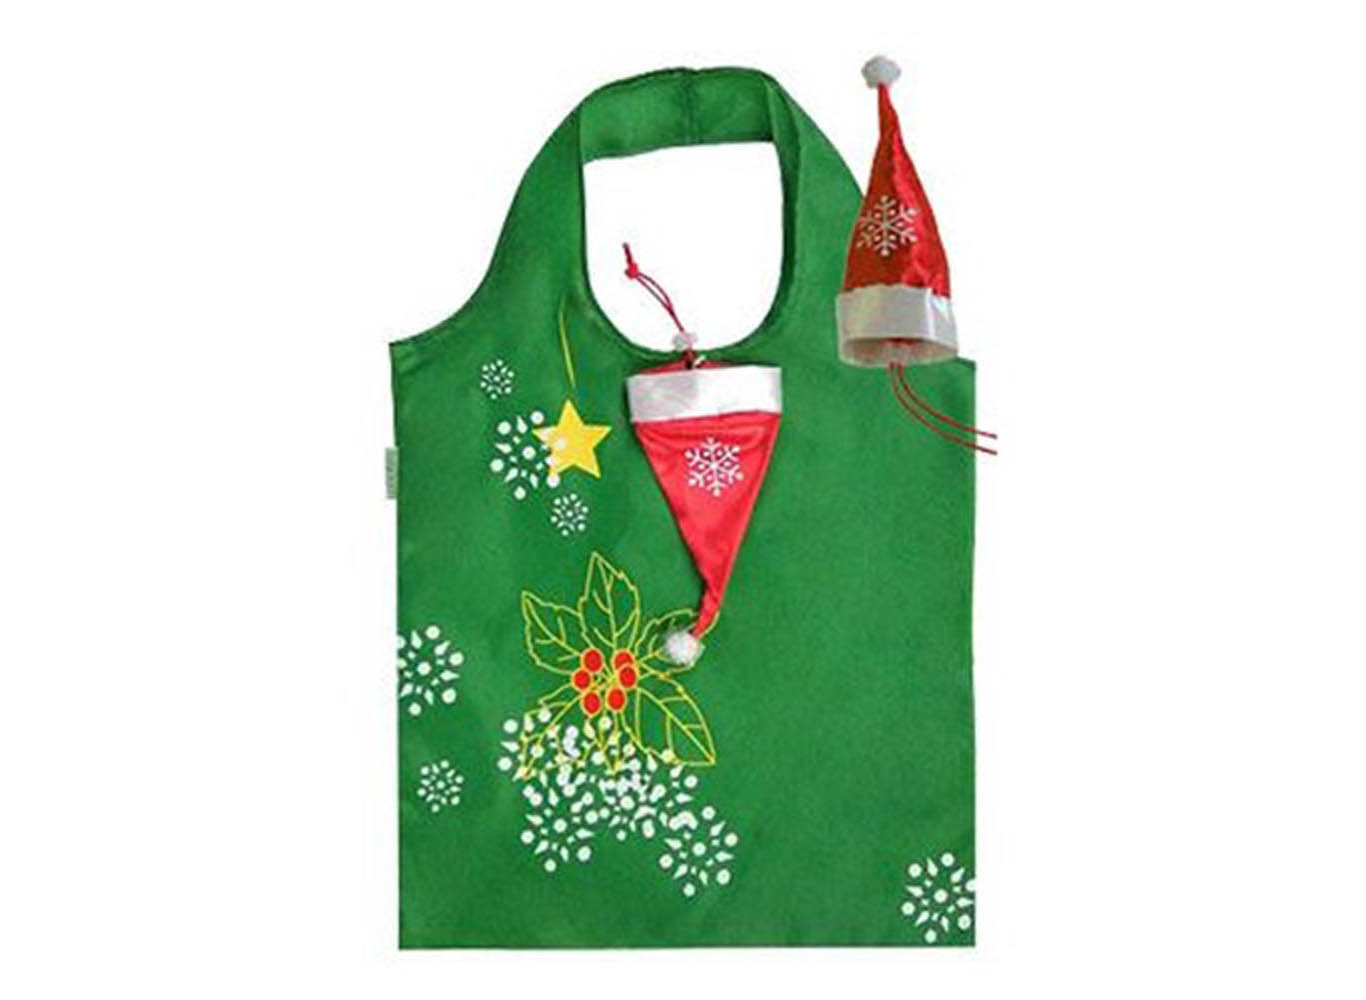 Custom Printed Recycled Plastic RPET Bag w/ Santa Hat Shaped Pouch